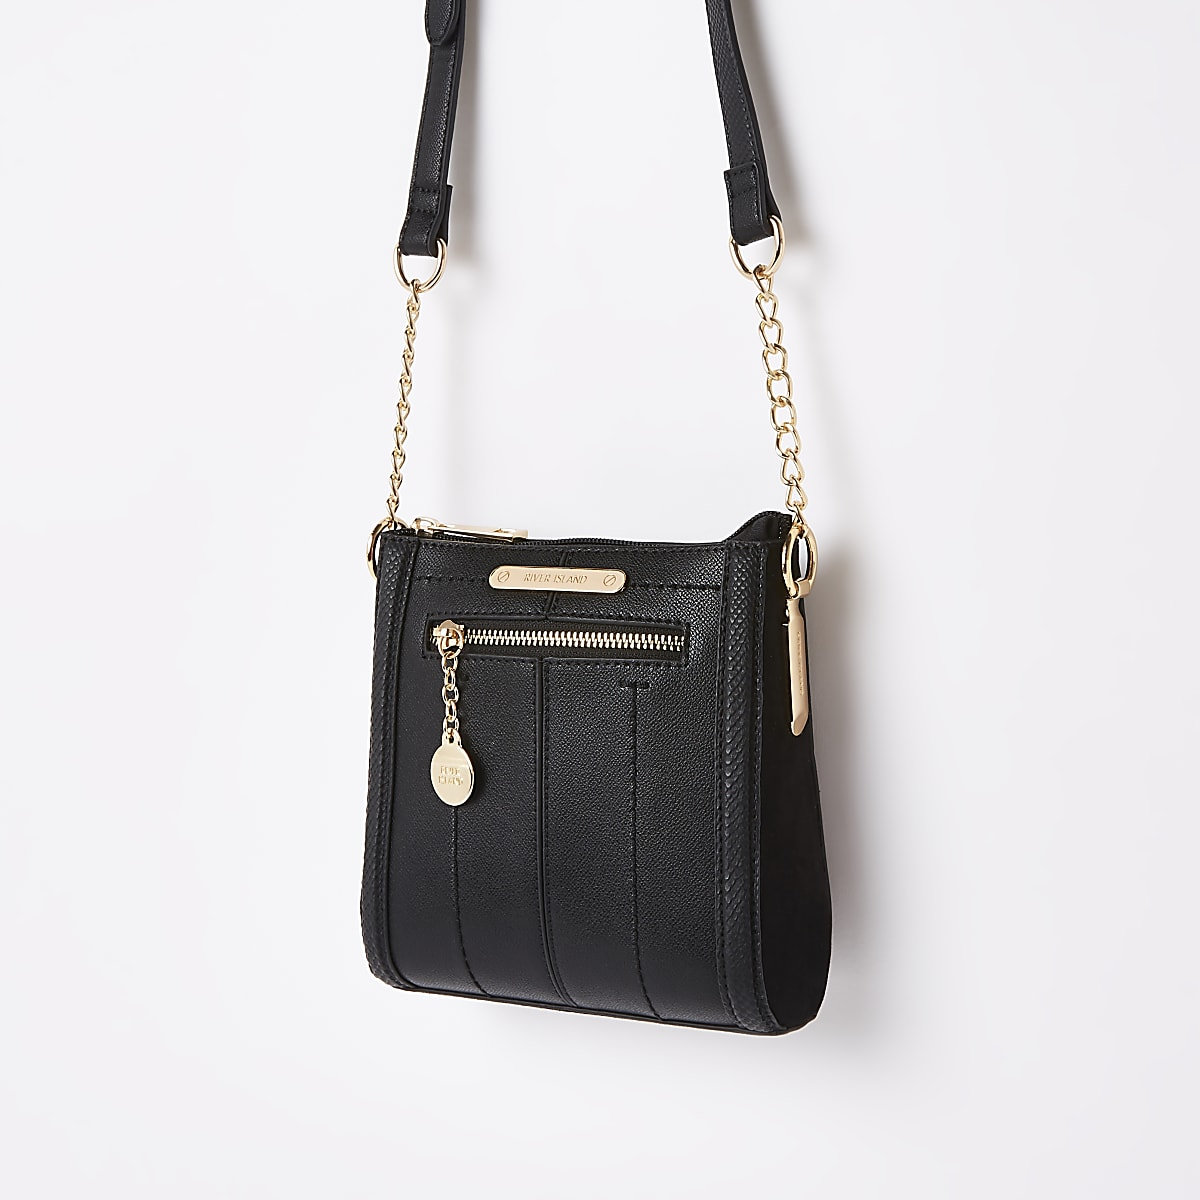 Black mini messenger cross body bag